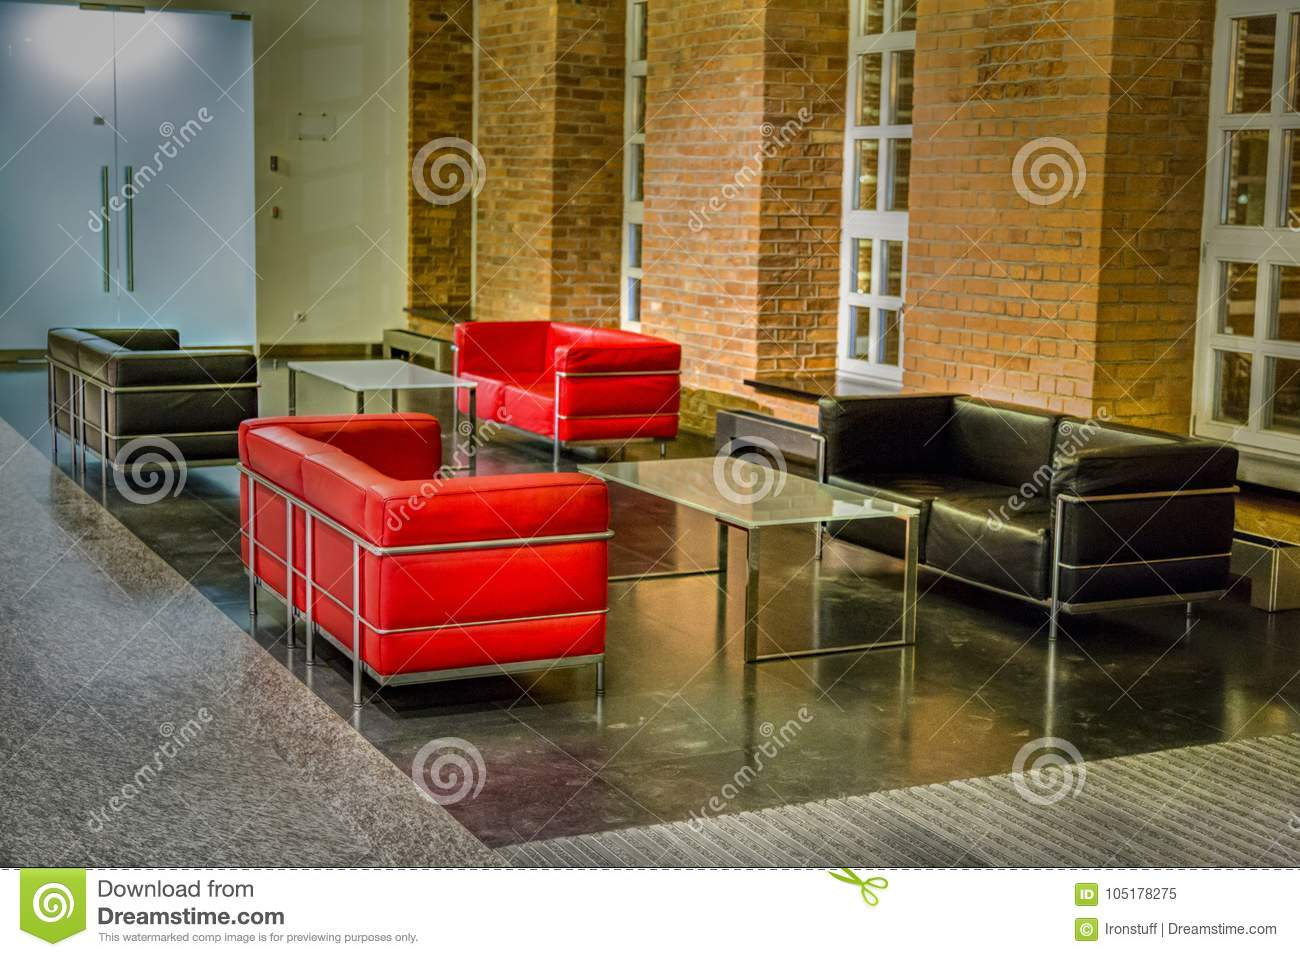 red and black leather sofas stock image image of home house rh dreamstime com red and black leather sofas gumtree Red Leather Sofa and Loveseat